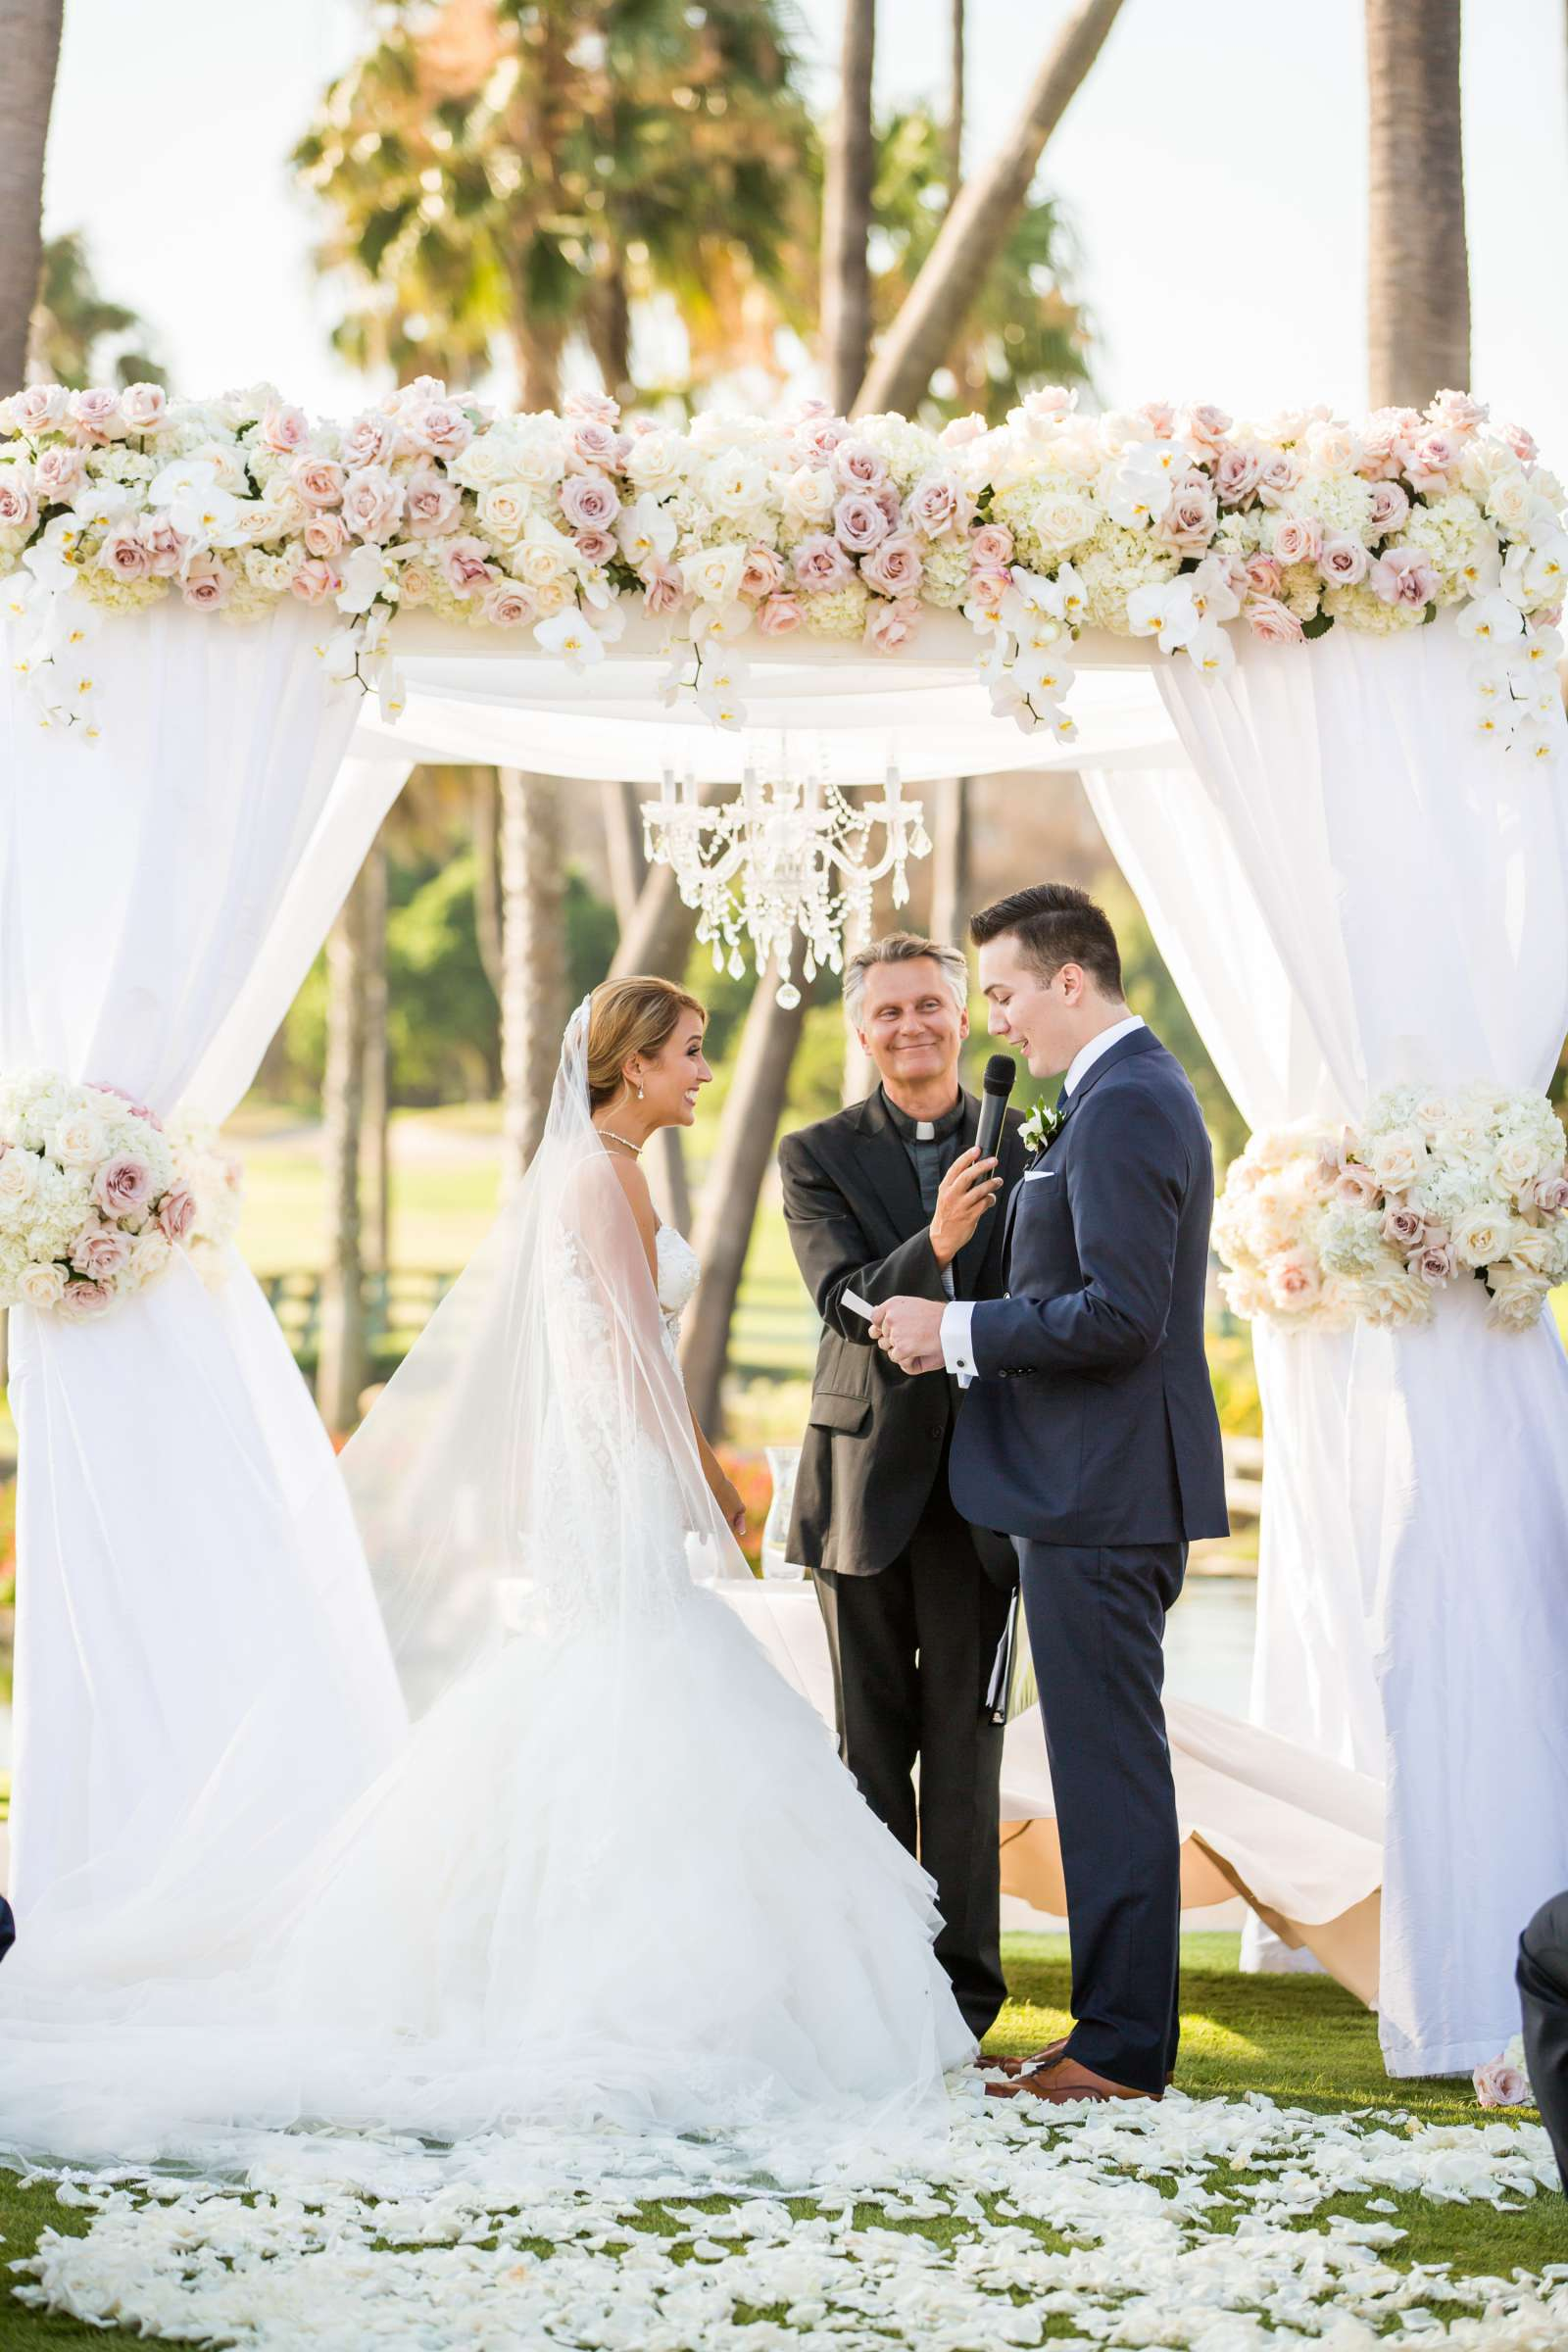 Fairbanks Ranch Country Club Wedding coordinated by Monarch Weddings, Gabriella and Kyle Wedding Photo #87 by True Photography